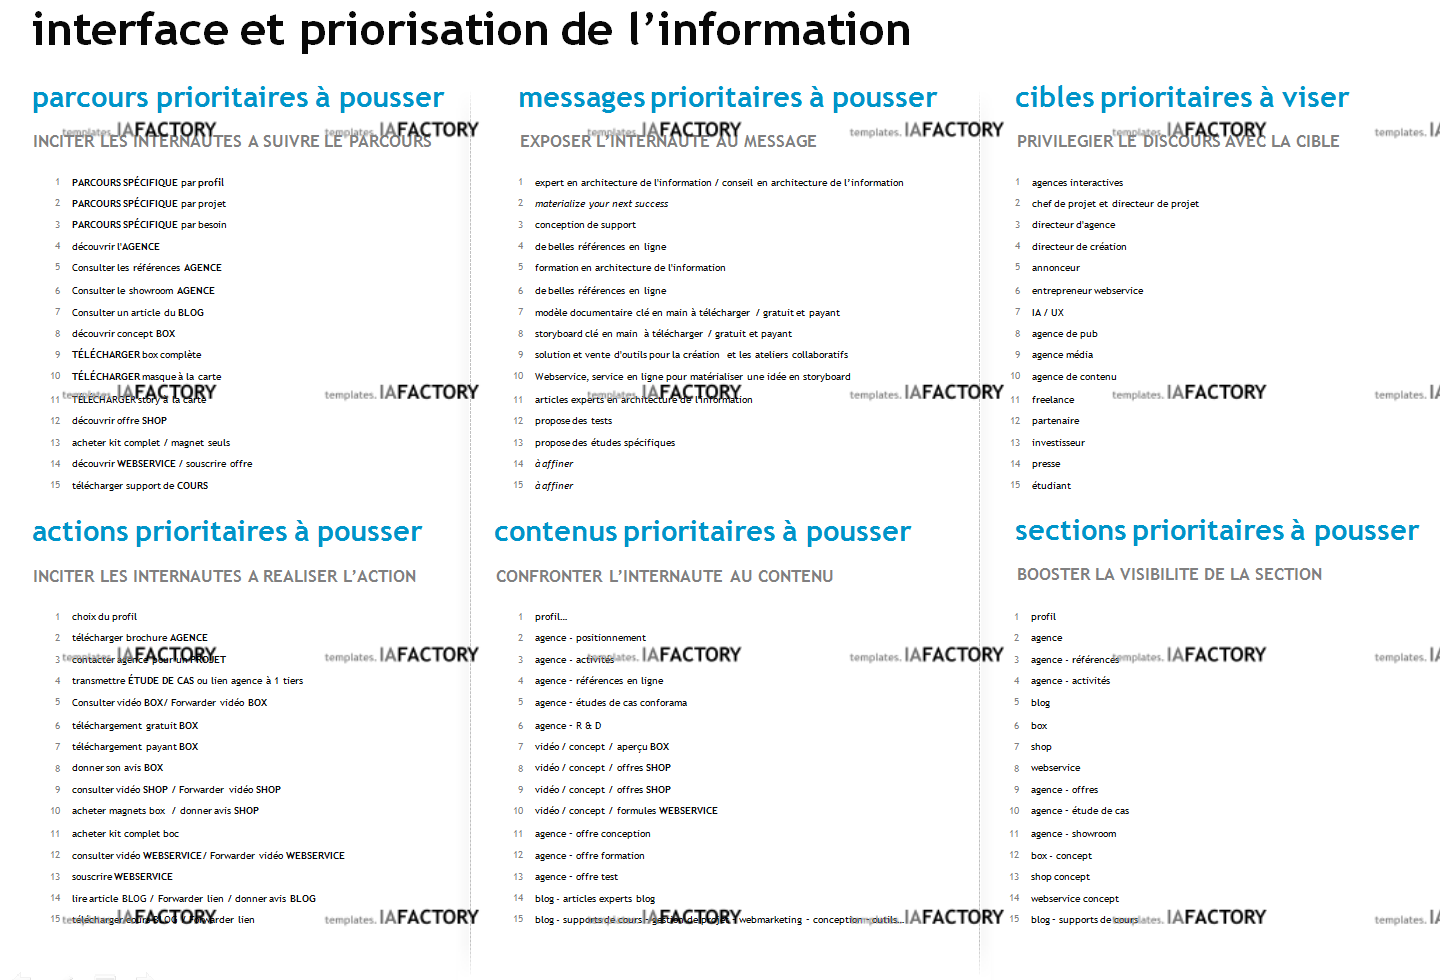 interface – priorisation, définition d'interface (http://templates.iafactory.fr) – fichier .ppt